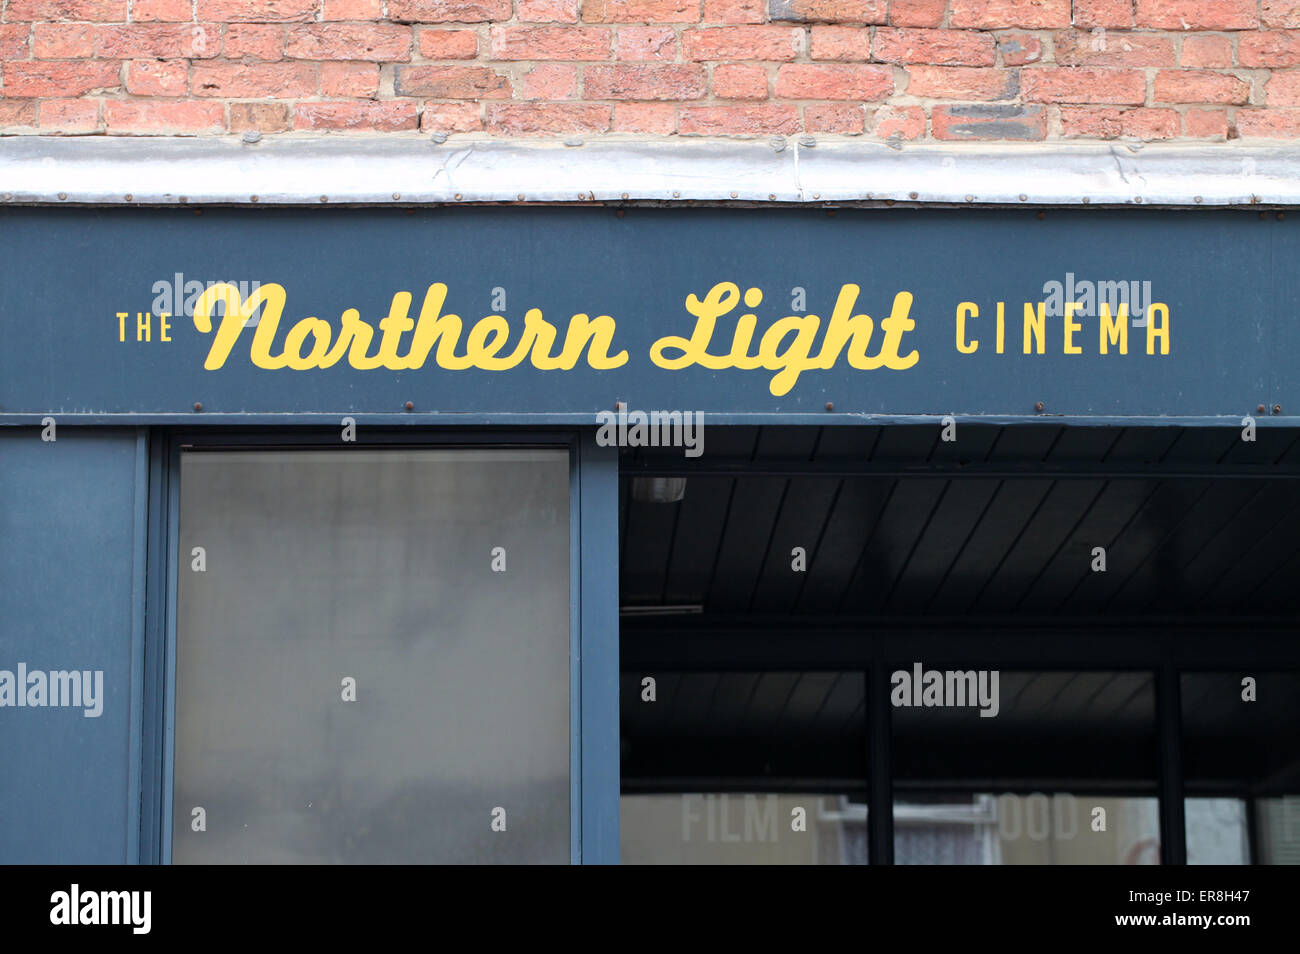 The Northern Light Cinema at Wirksworth in Derbyshire - Stock Image